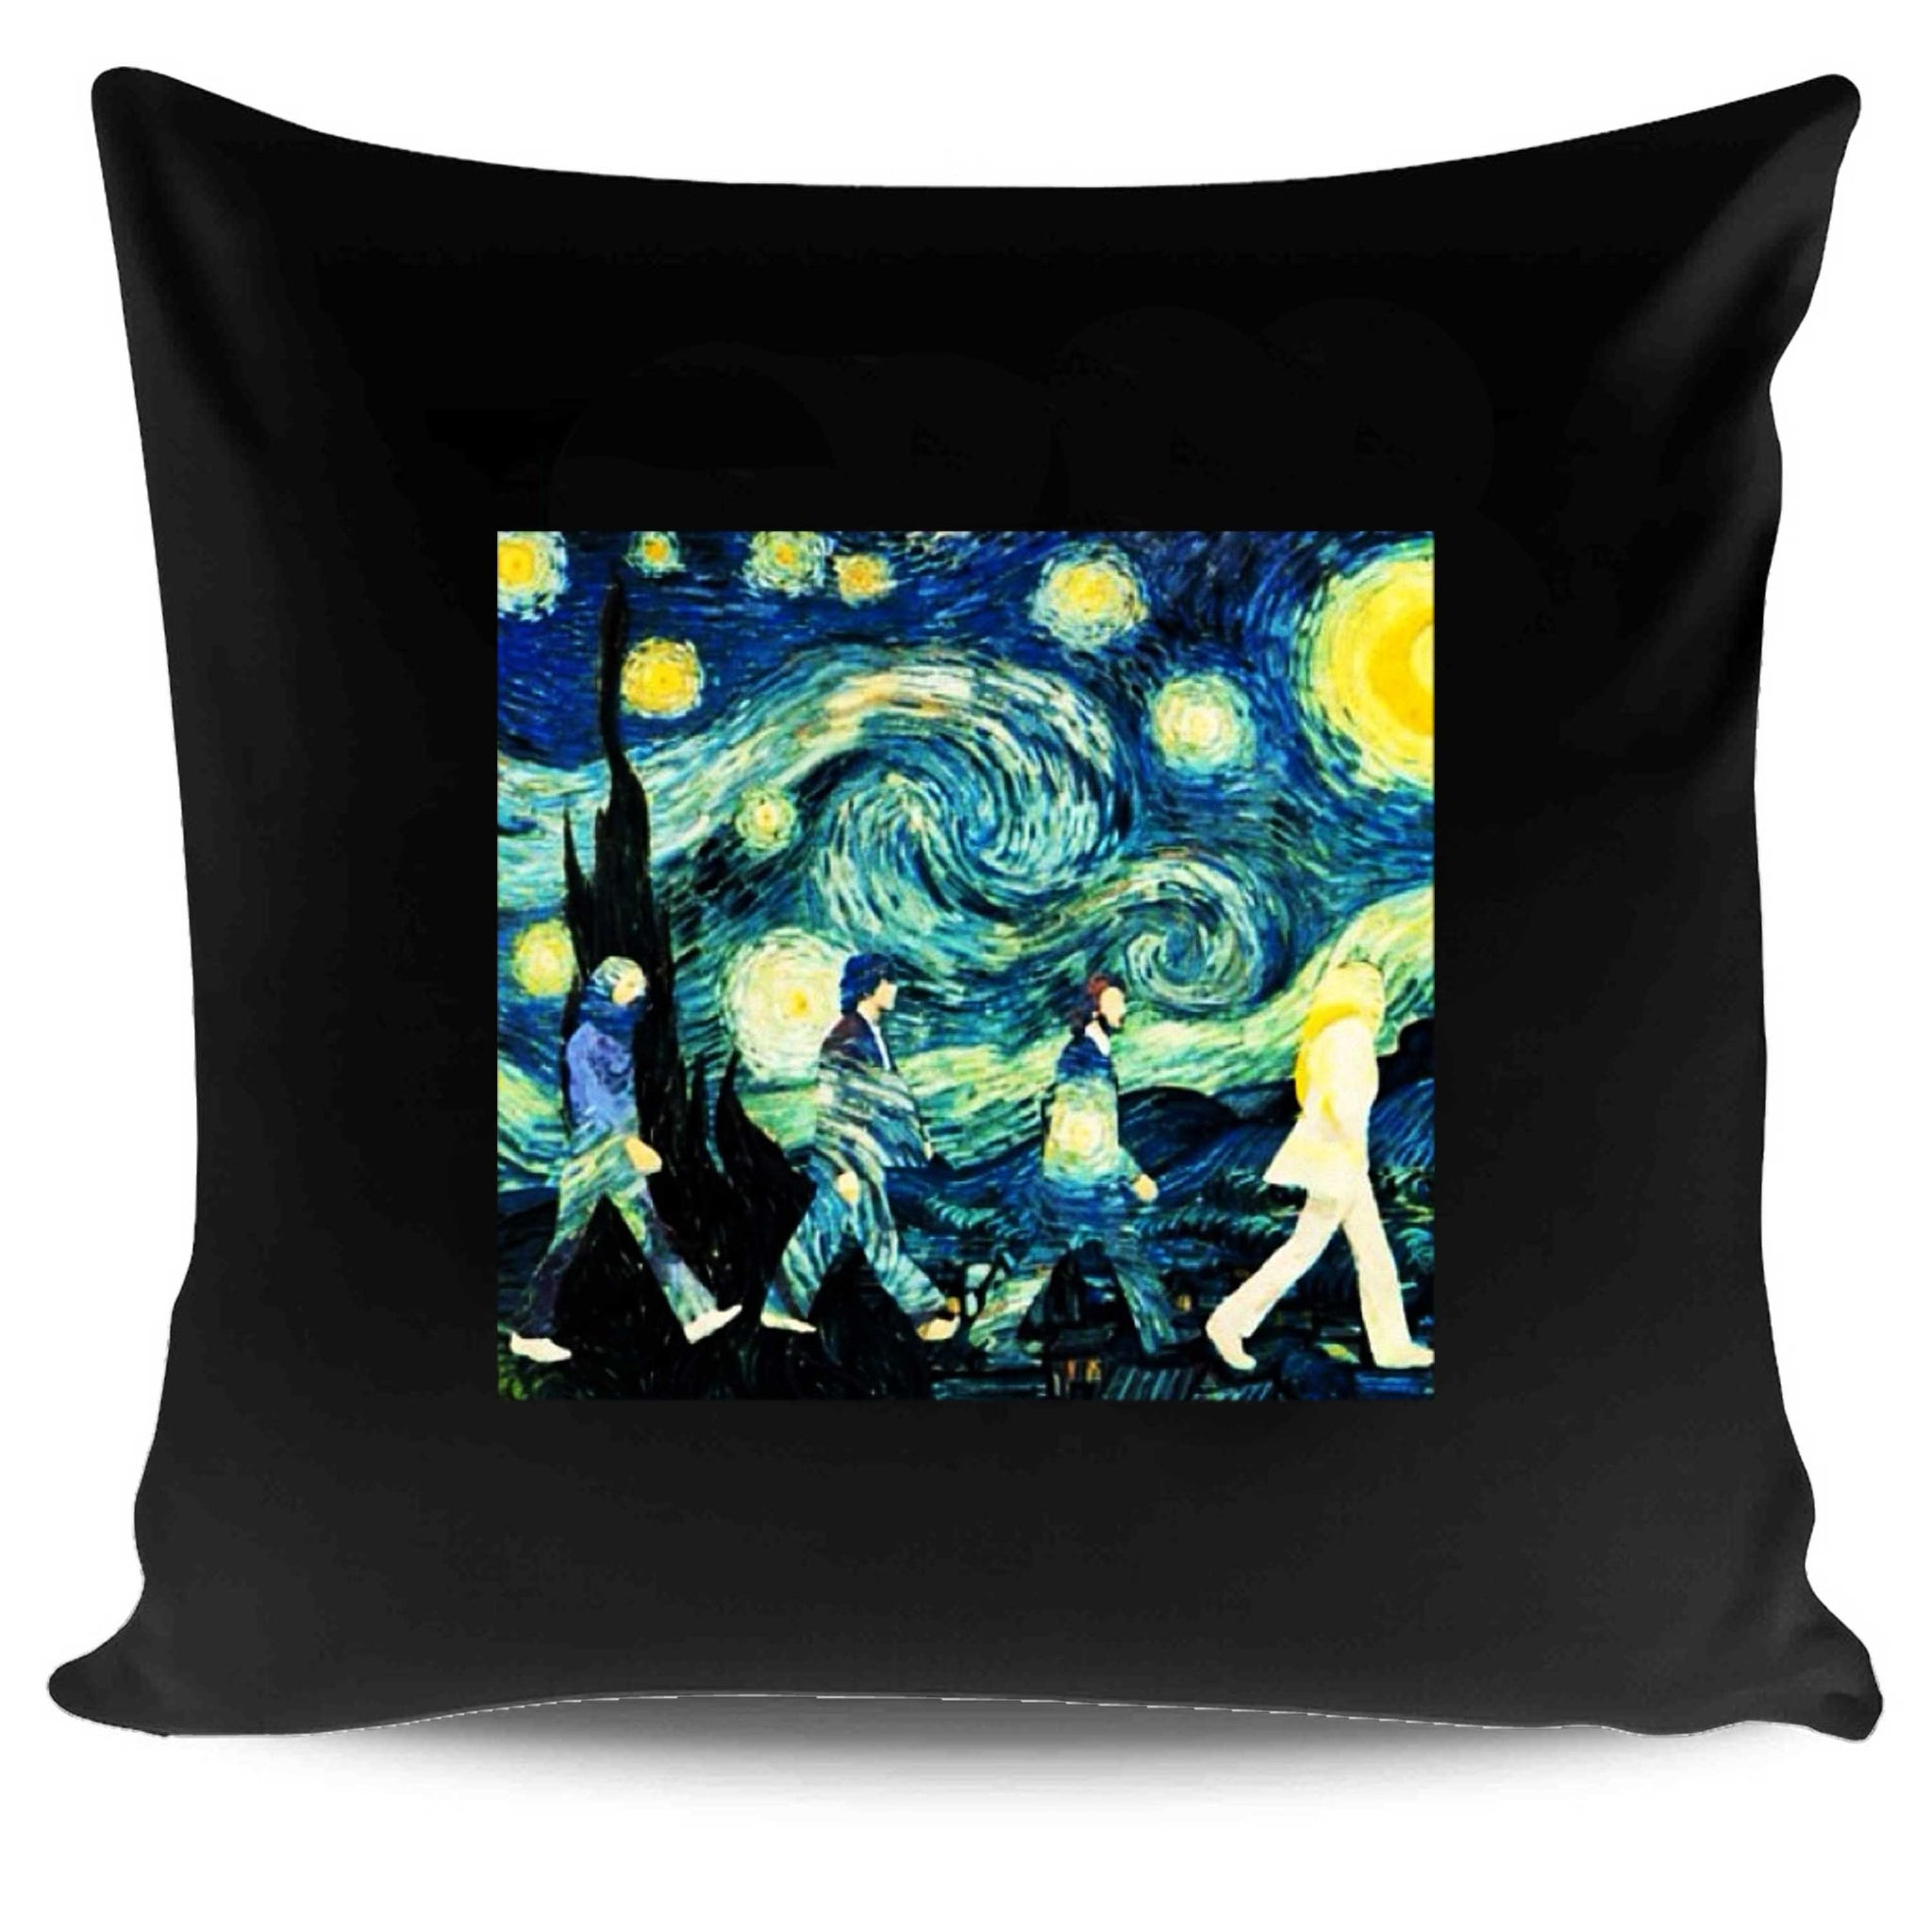 Beatles Inspired Starry Night And Abbey Road Band Painter Van Gogh Pillow Case Cover